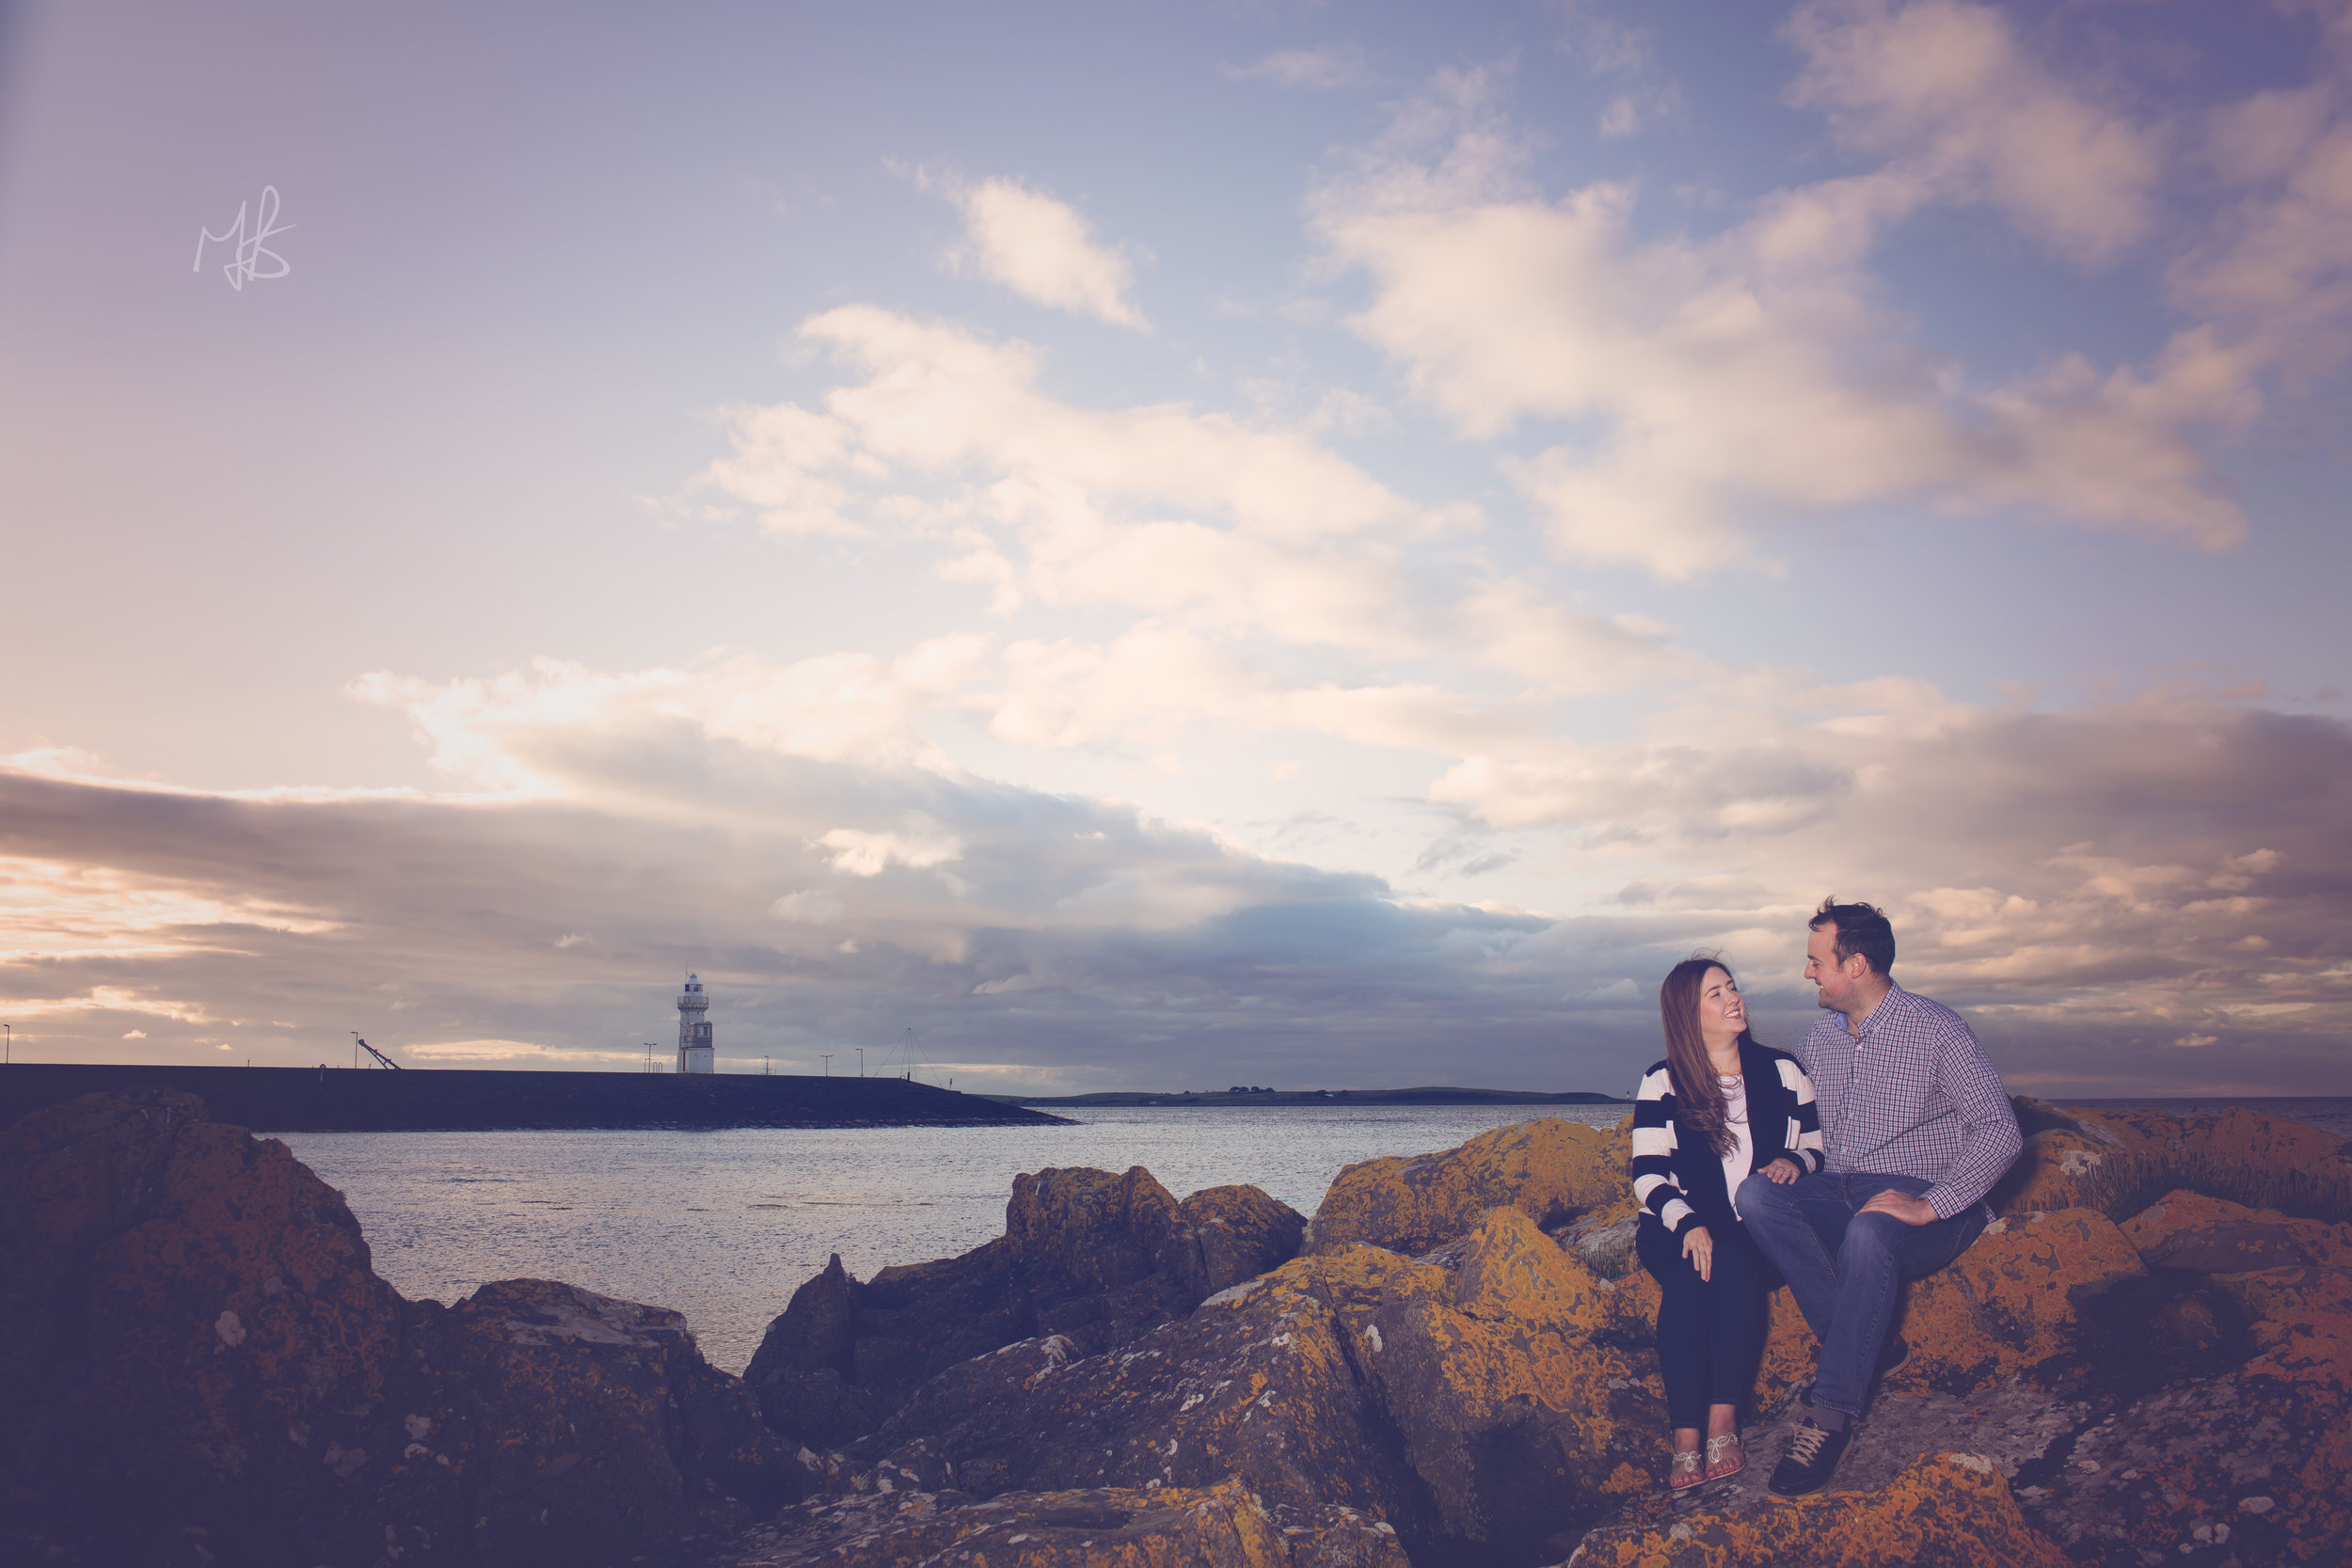 Mark_Barnes_Northern_Ireland_wedding_photographer_Donaghadee_Wedding_photography_Bangor_wedding_photographer-4.jpg